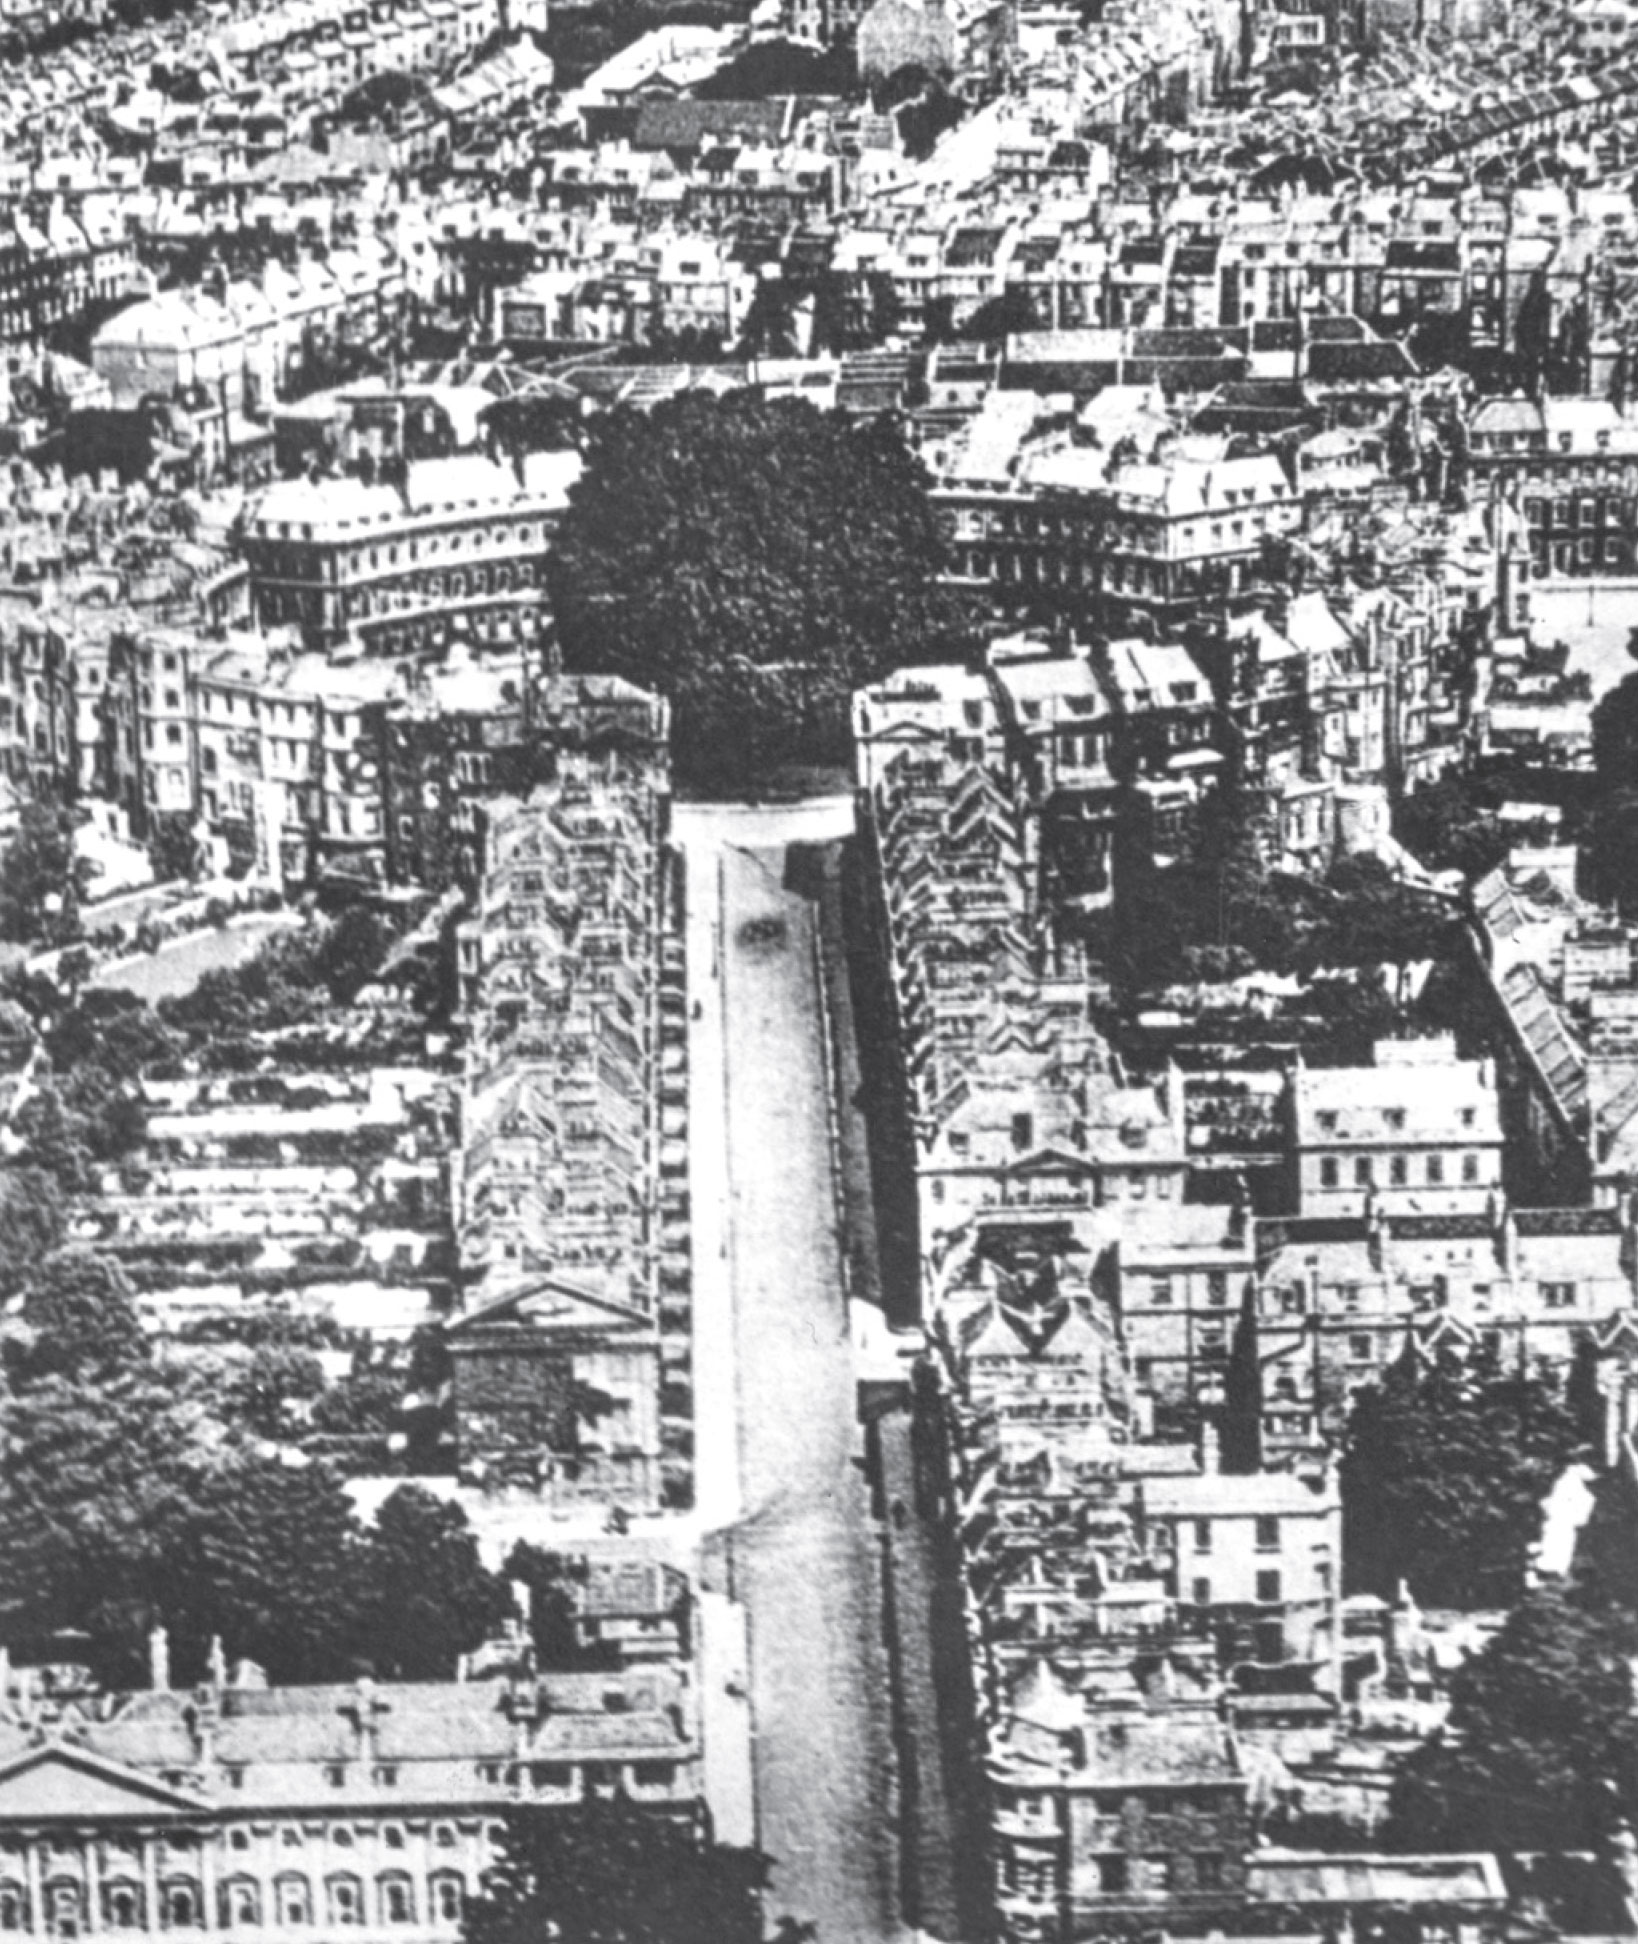 Aerial view of The Circus in Bath. Photo not by Norman Foster.